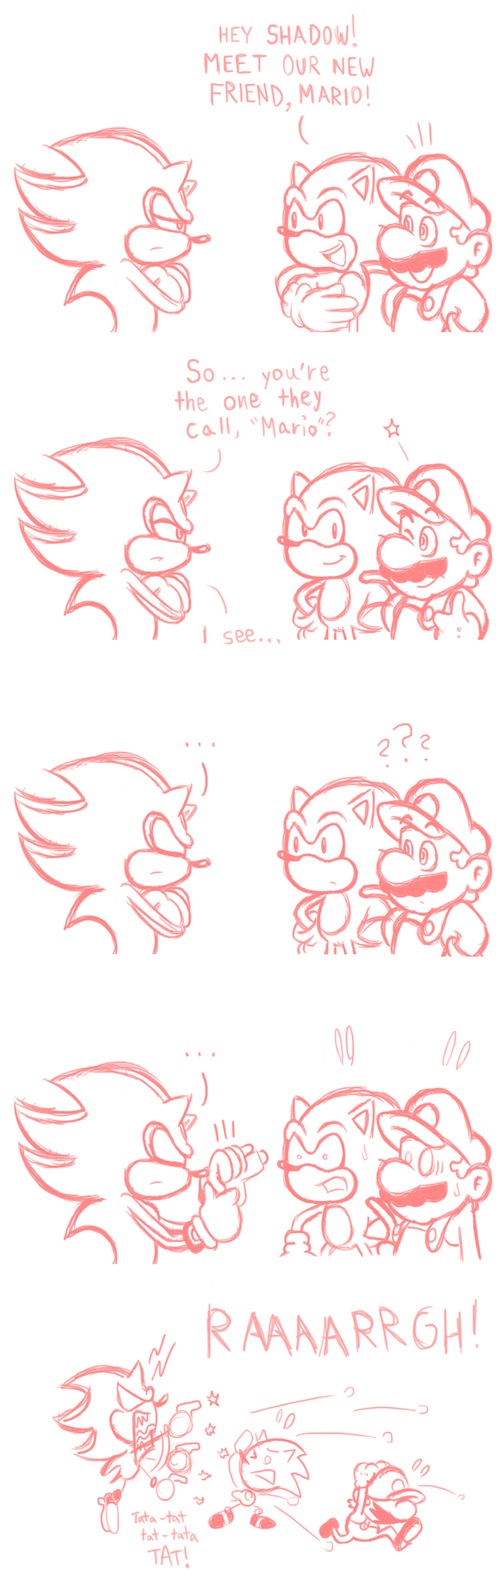 Mario and Sonic Comic - Shadow Instincts by JamesmanTheRegenold